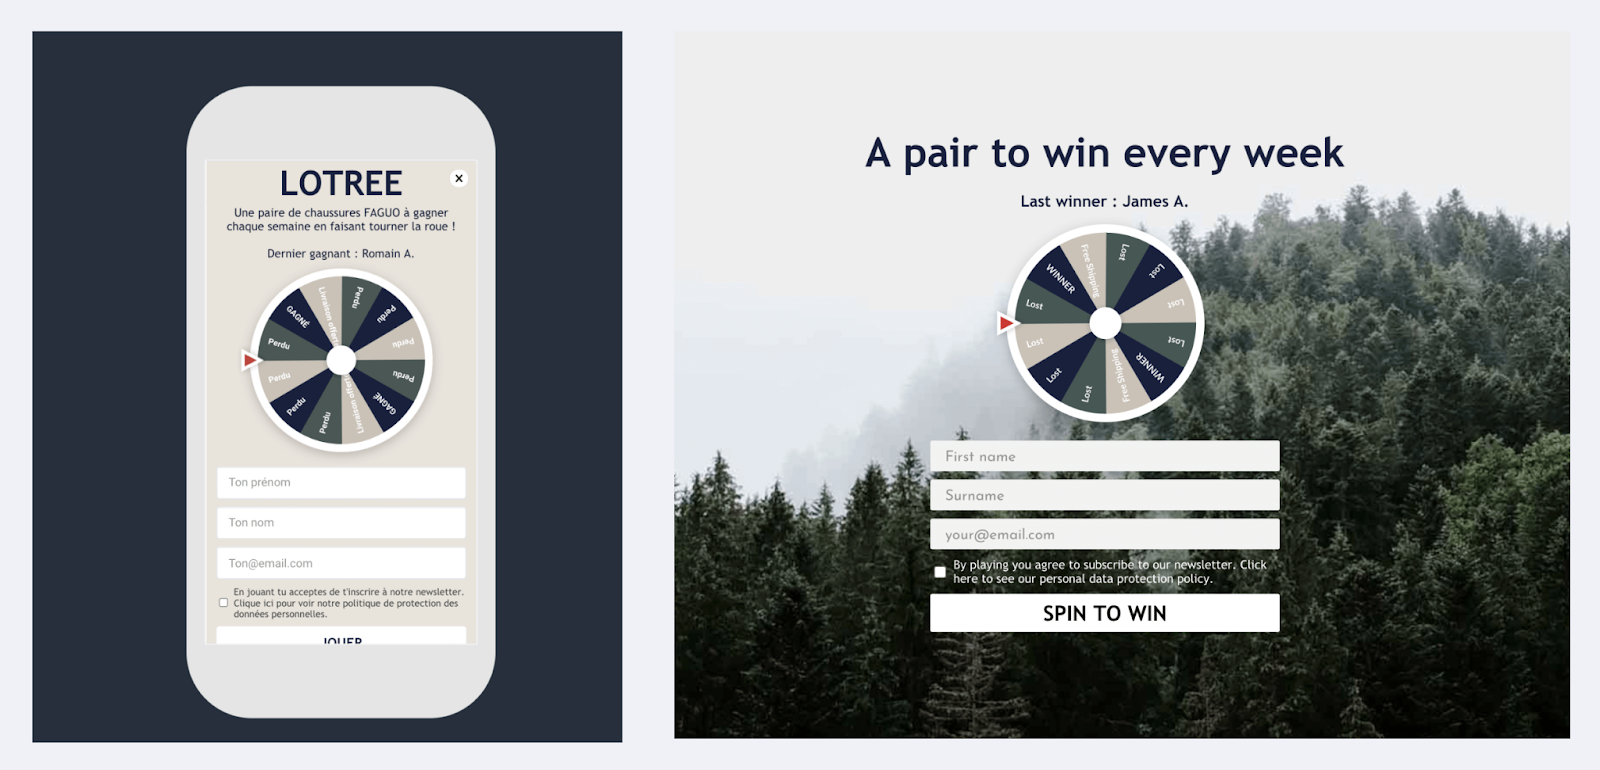 Spin to win popup mobile and desktop versions